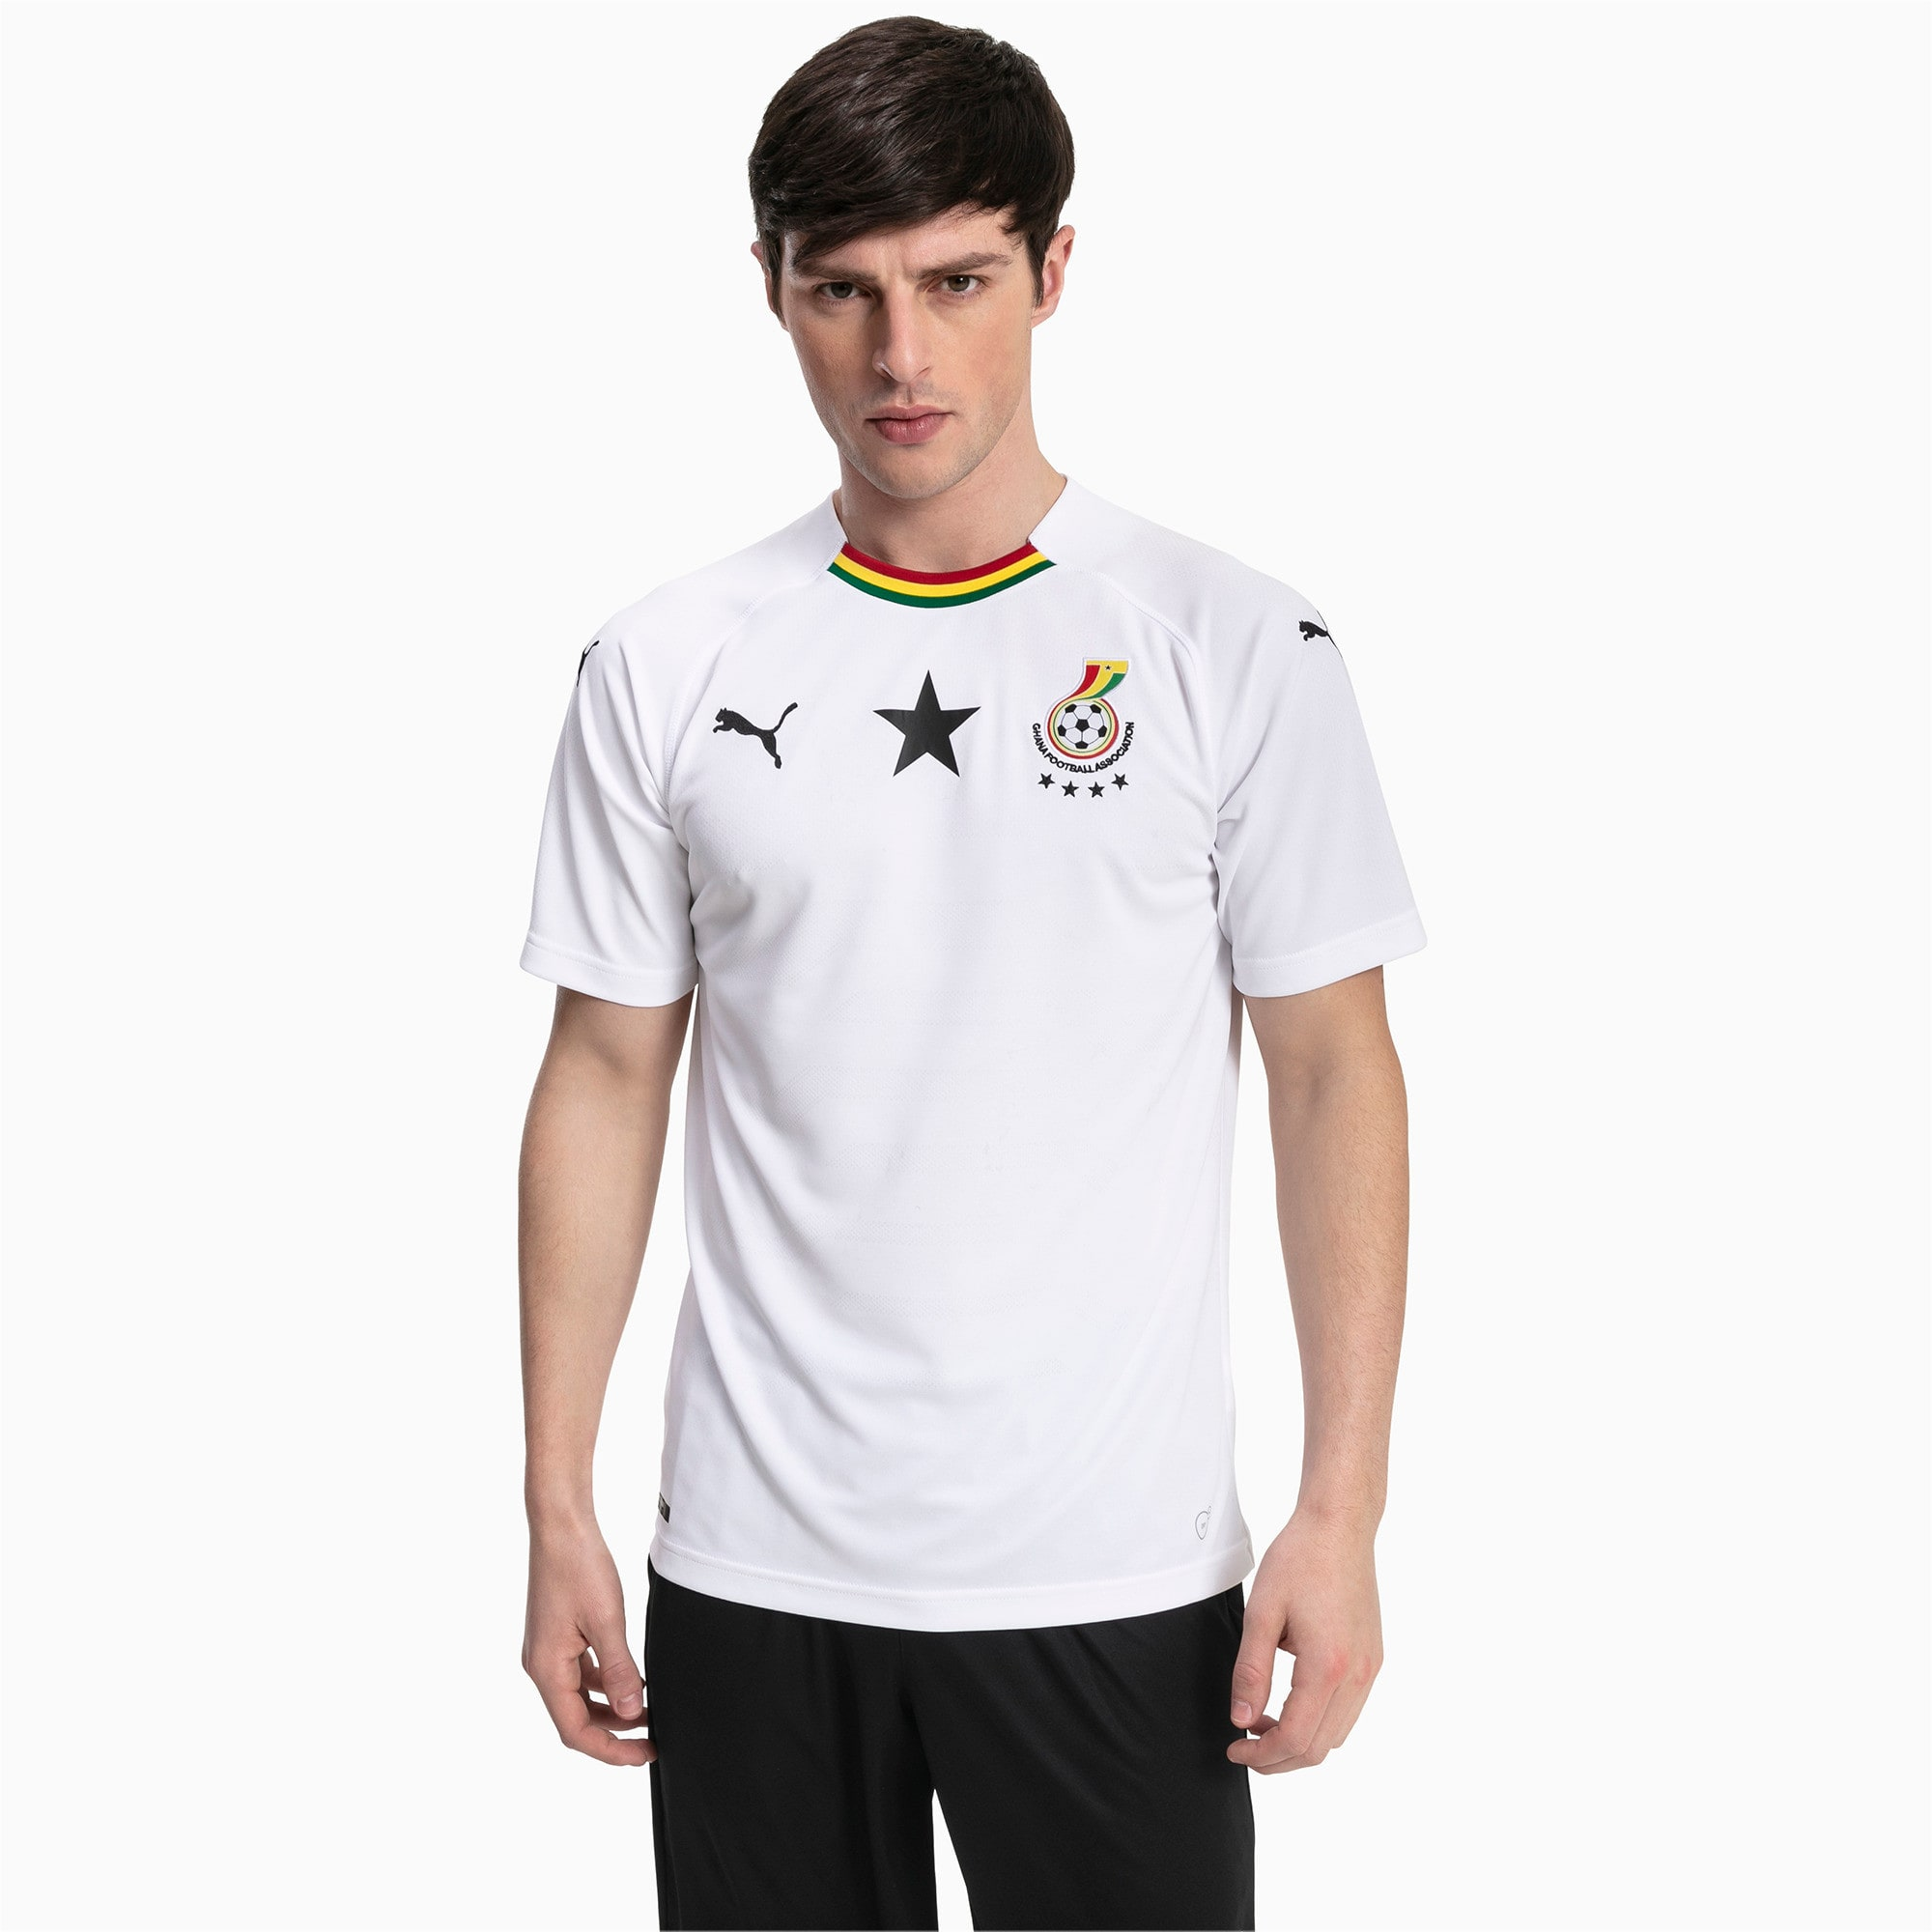 Thumbnail 1 of Ghana Men's Away Replica Jersey, Puma White, medium